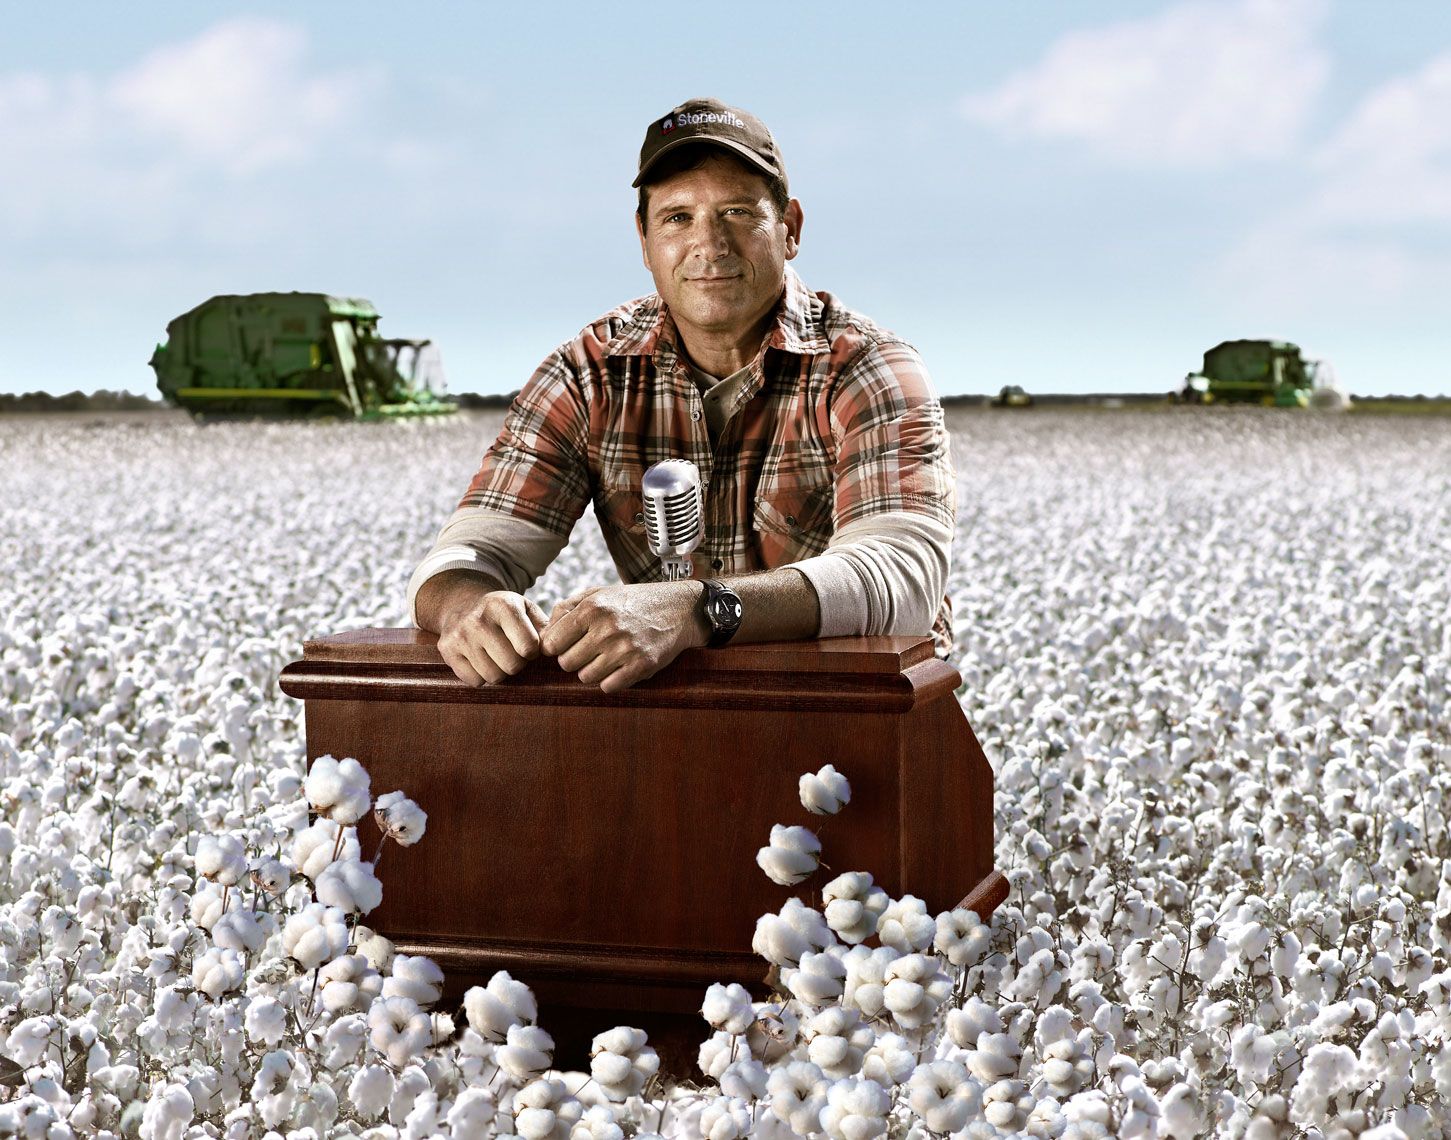 Bayer Crop Science_032| Robert Randall Advertising Photographer, Commercial Photographer, CGI, Portrait, and Lifestyle Photography